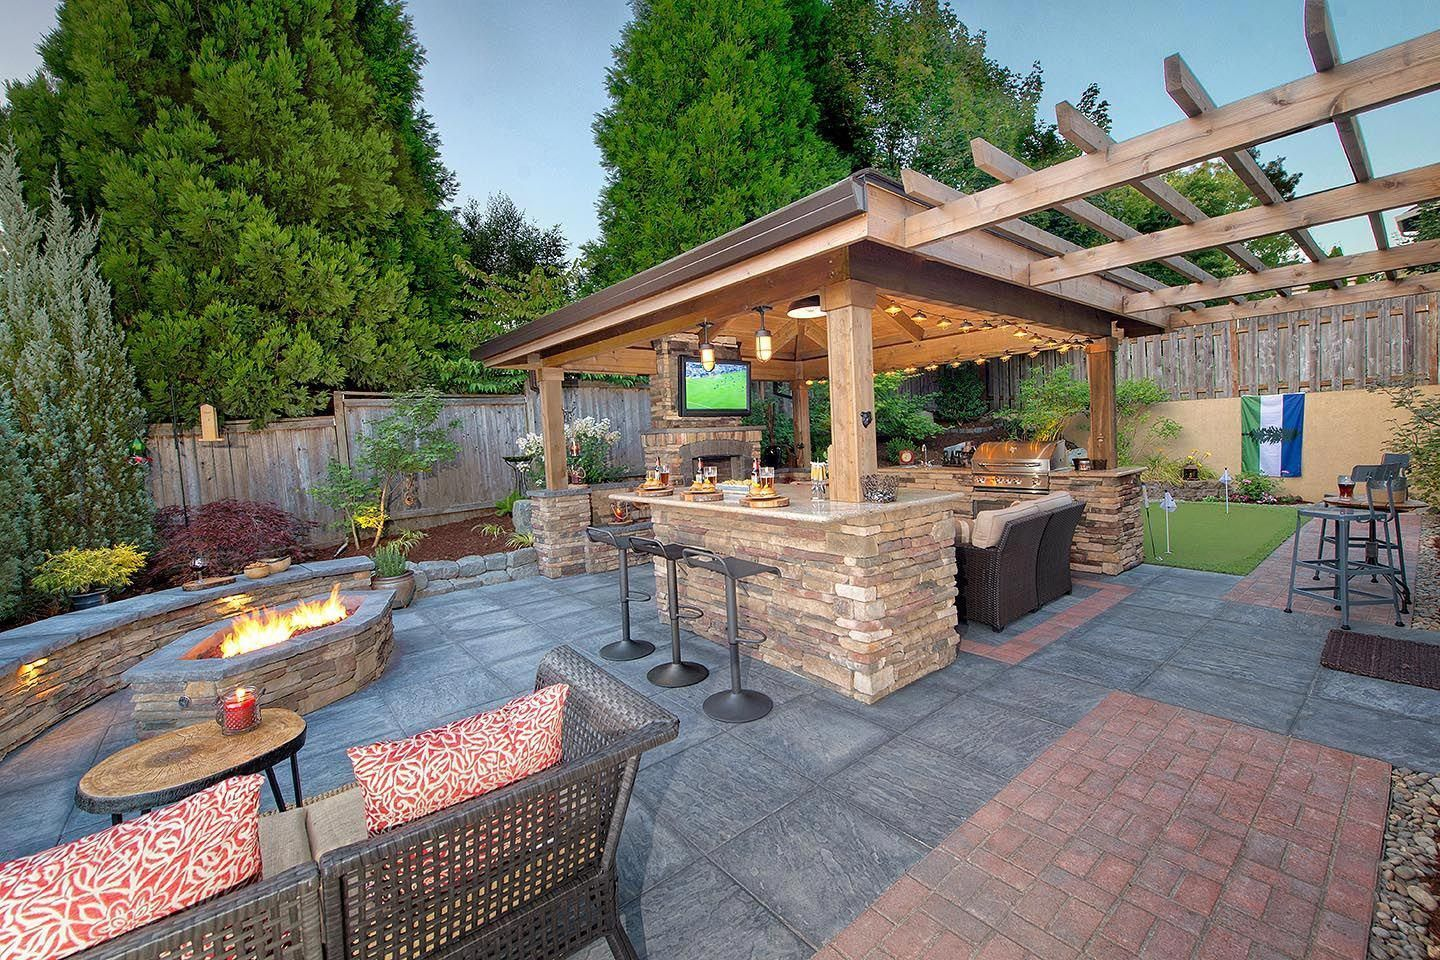 Acquire Our Best Ideas For Outdoor Kitchens Including Lovely Outdoor Kitchen Decor Backyard Decor Backyard Landscaping Designs Outdoor Kitchen Decor Backyard